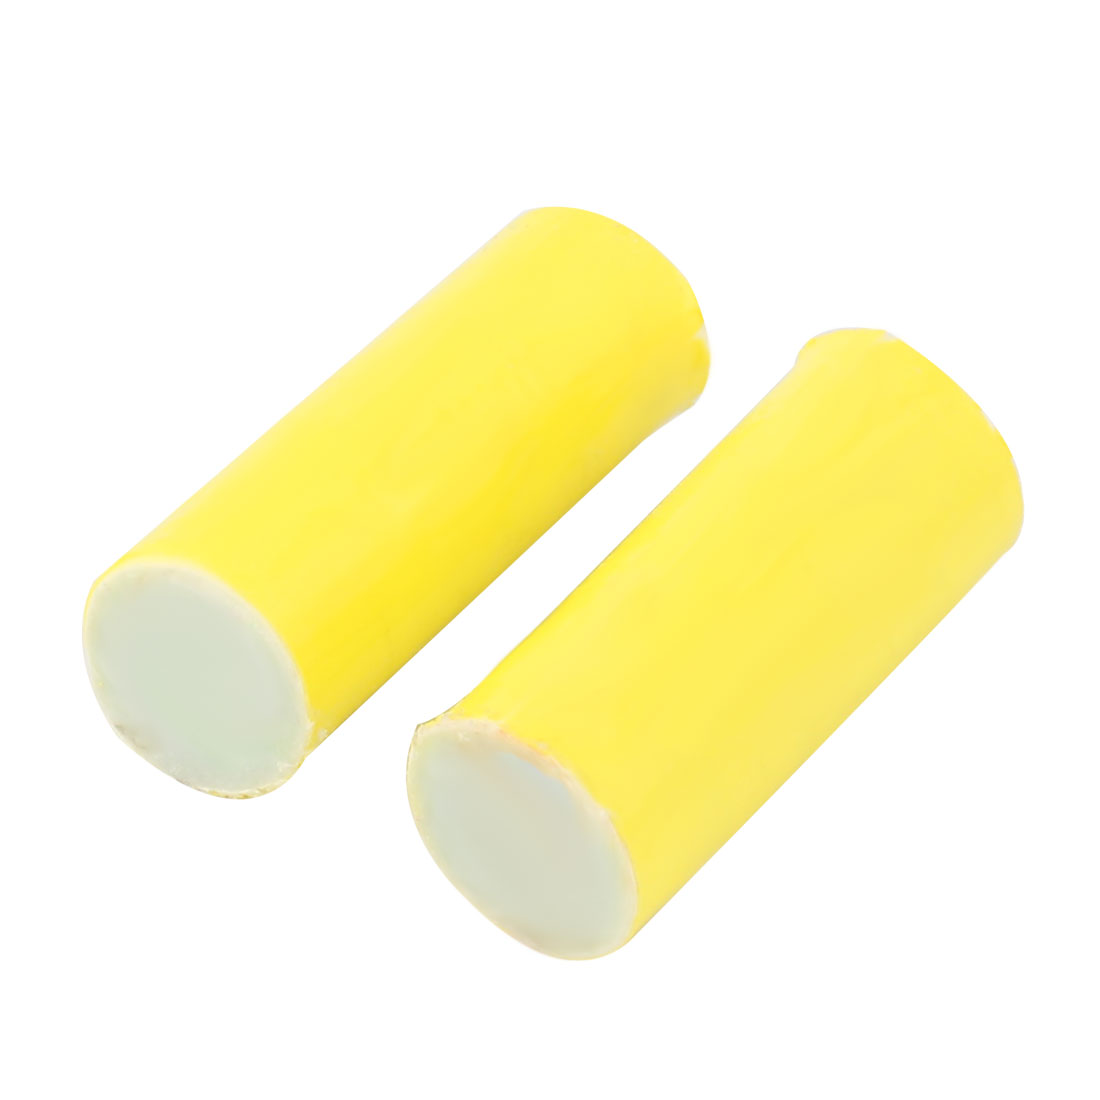 Household Bathroom Fibre Kitchenware Pan Pot Cleaning Brush Rod Yellow 2 Pcs